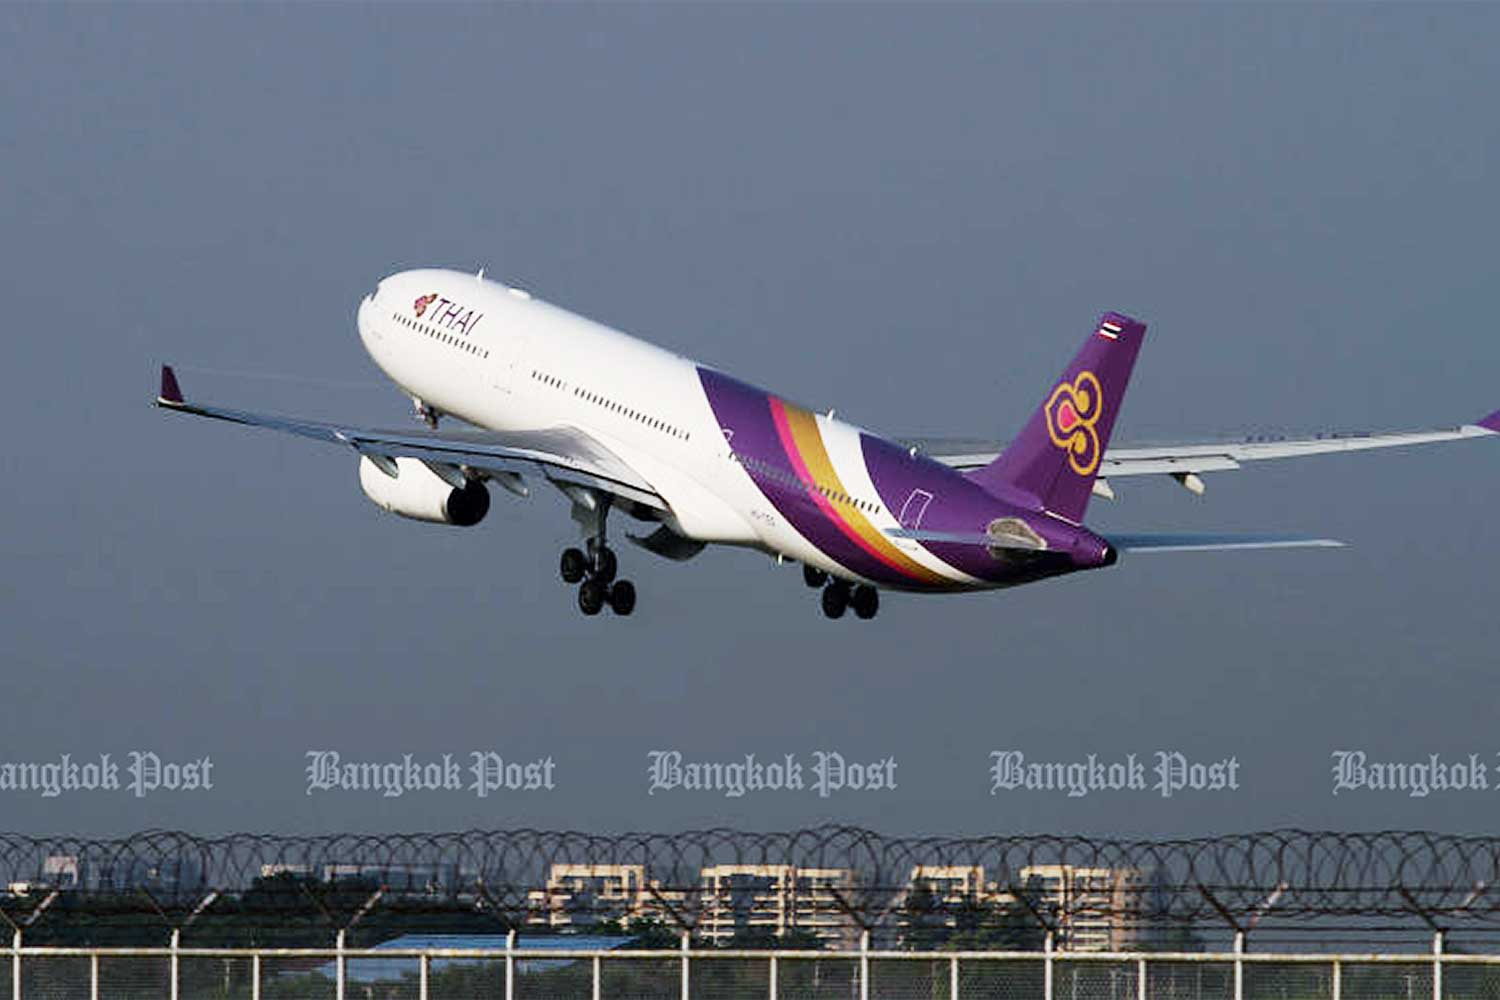 The State Audit Office will begin auditing Thai Airways International's balance sheet and financial statements and review the board's transparency in operating the carrier. (Bangkok Post photo)